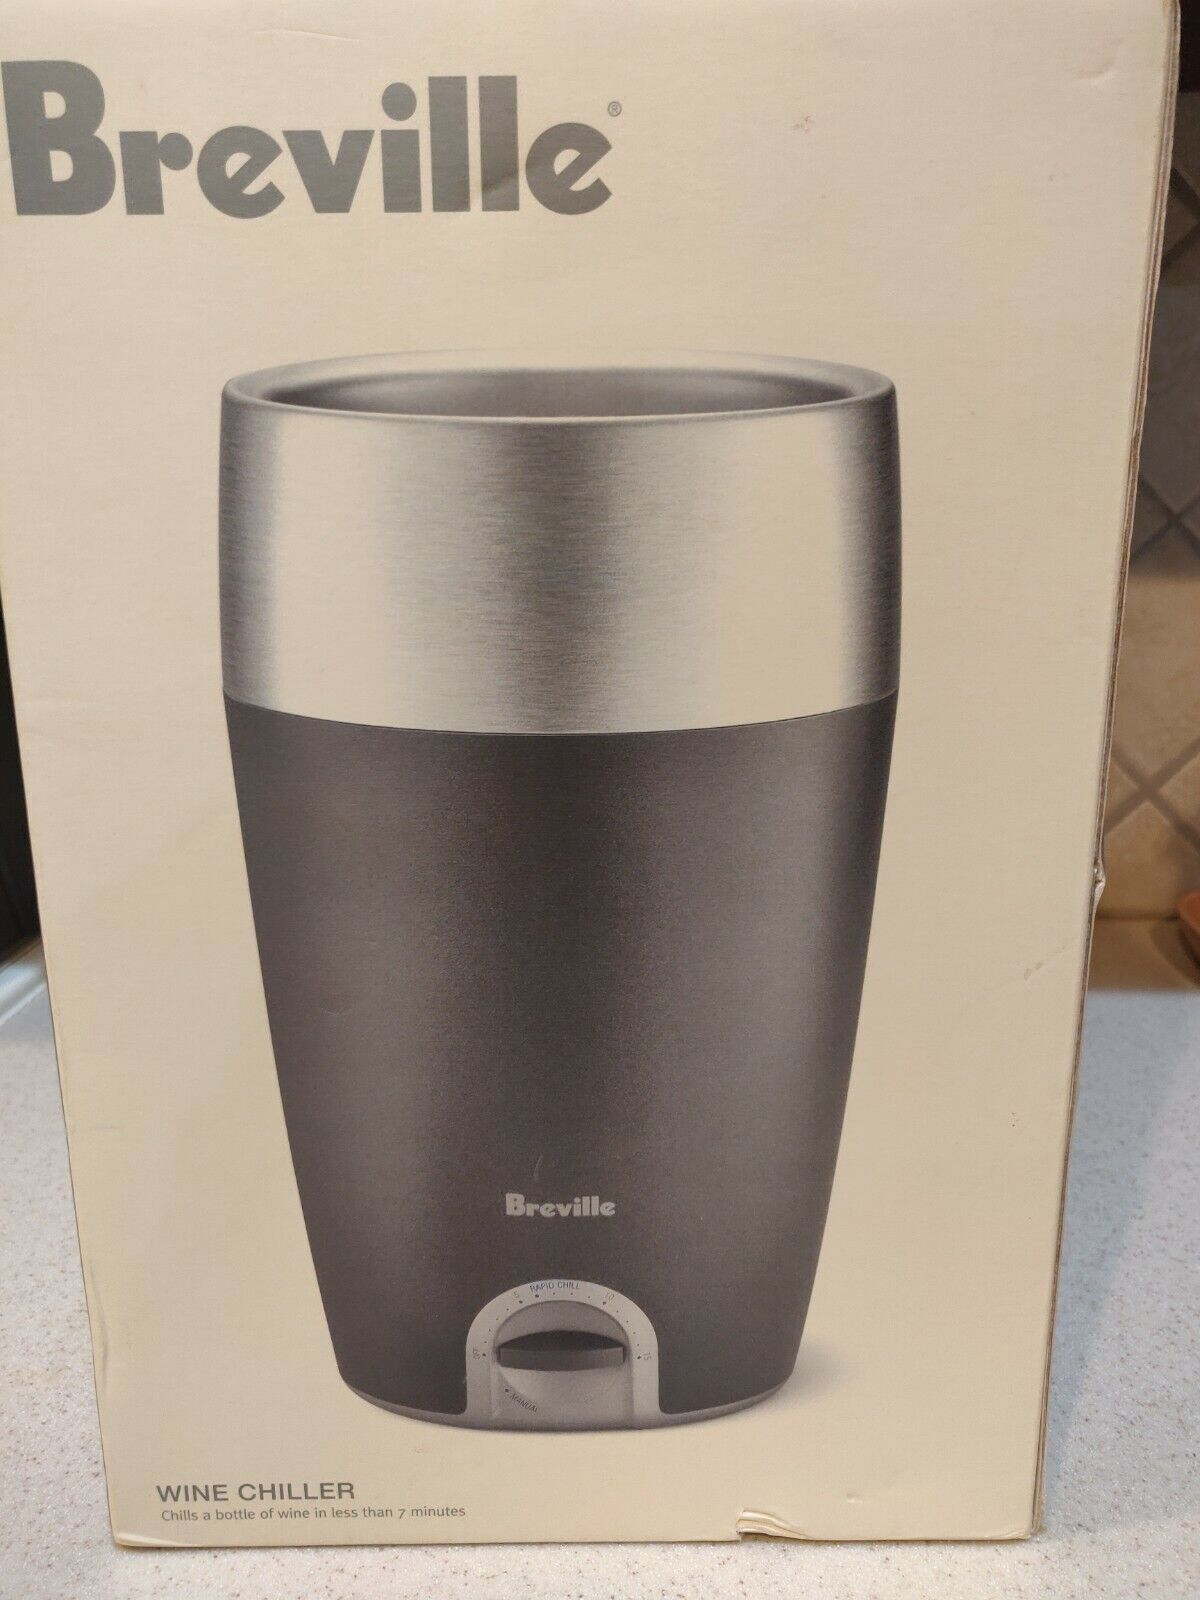 Breville Stainless AC/DC Free-Standing Rapid 7 minute Wine Chiller Cooler picnic